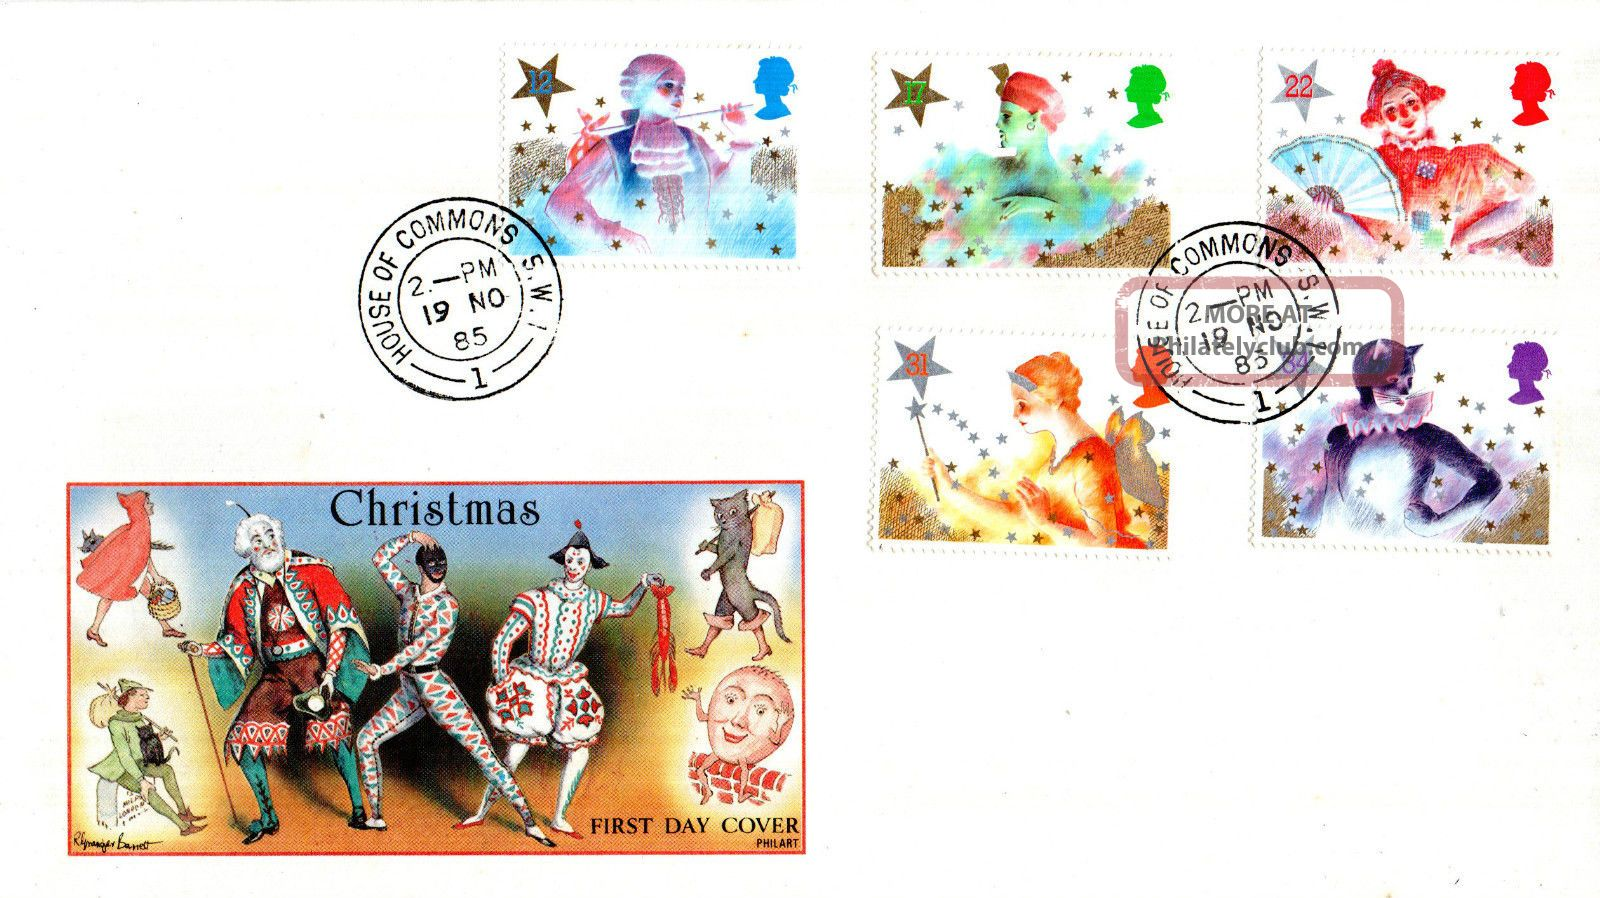 19 November 1985 Christmas Philart First Day Cover House Of Commons Sw1 Cds Topical Stamps photo